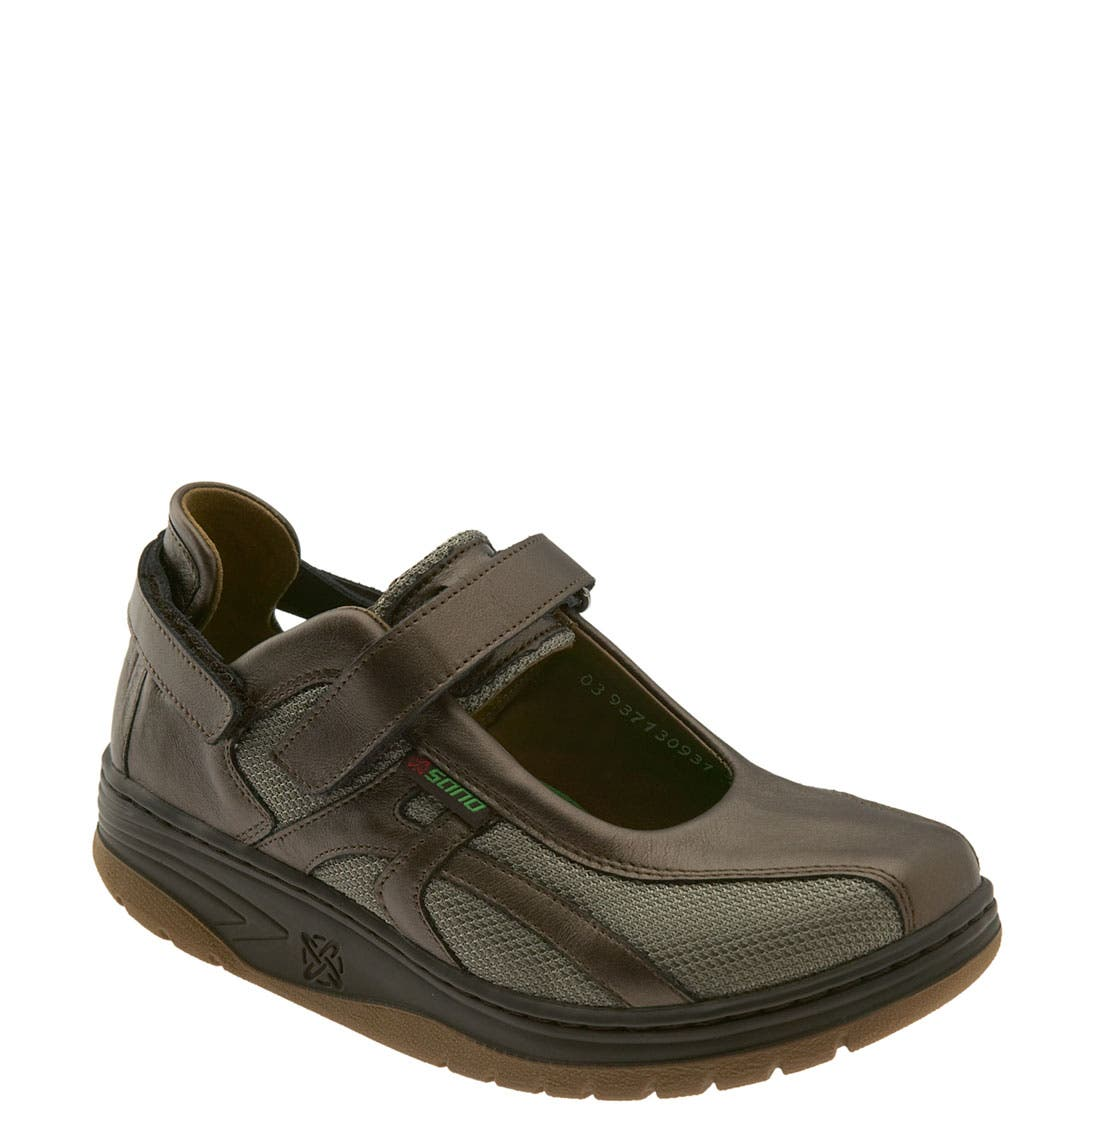 Sano by Mephisto 'Excess' Walking Shoe (Women)